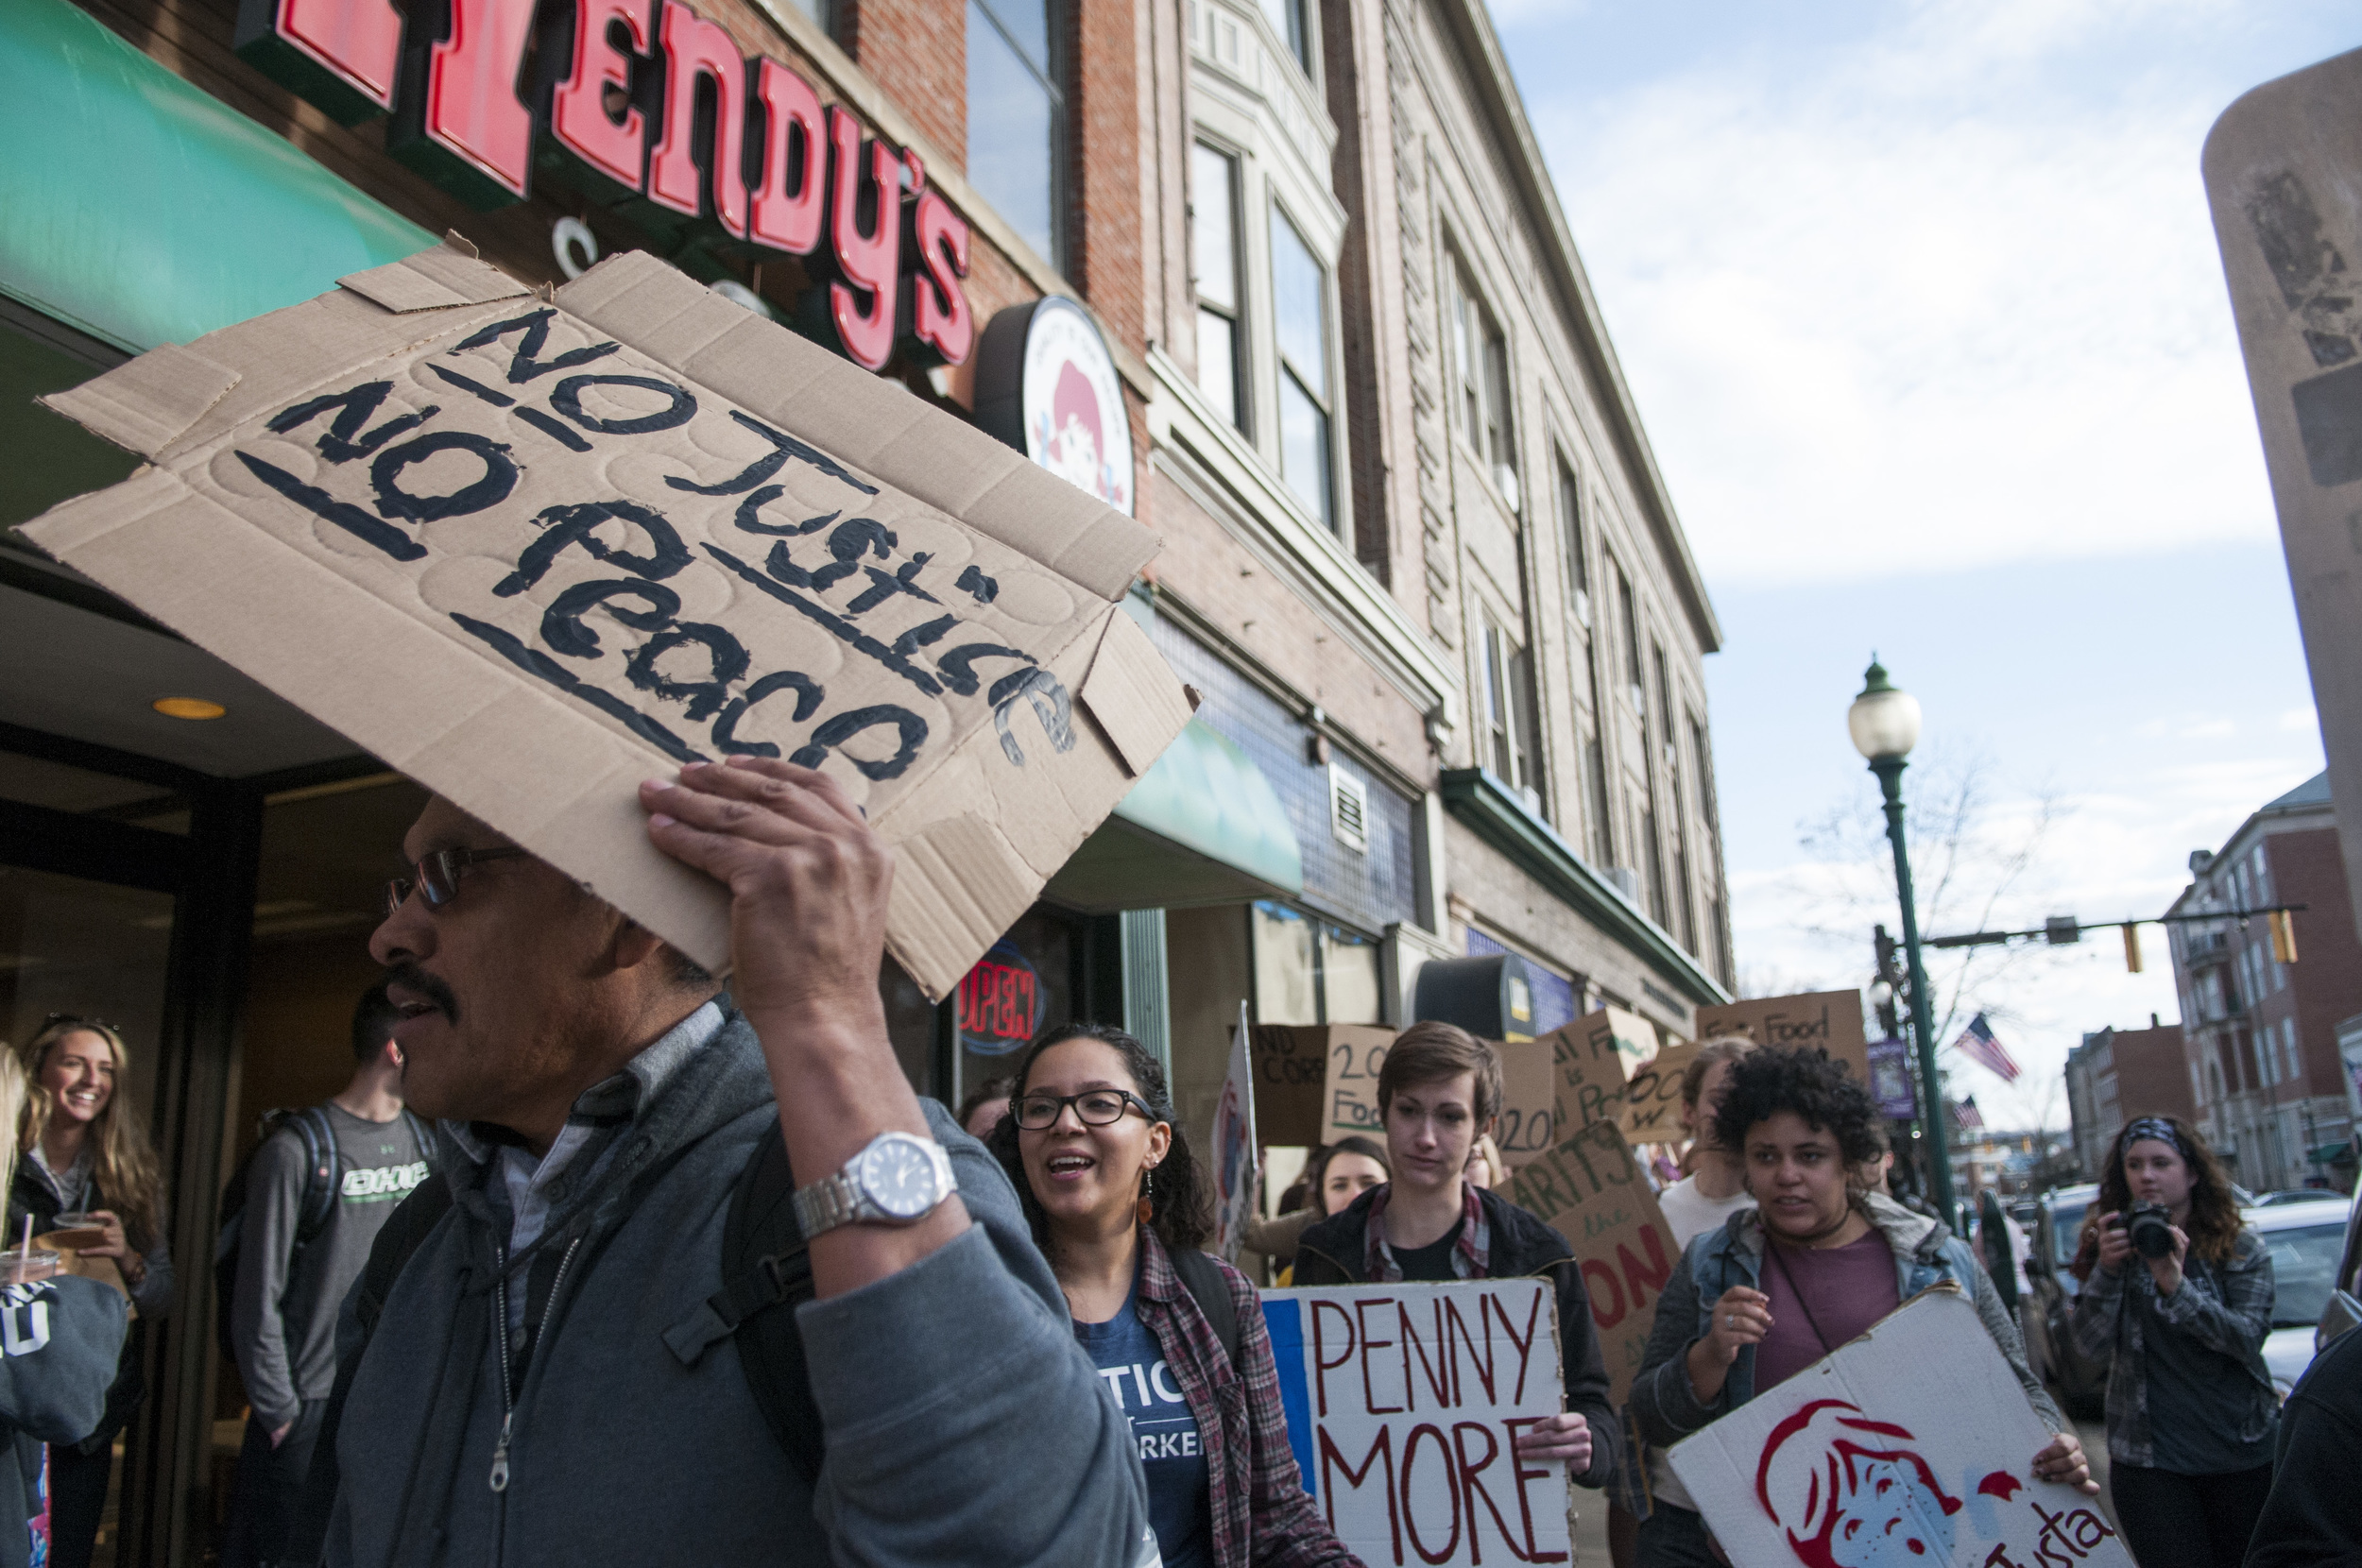 Santiago Perez, a representative from the Coalition of Immokalee Workers, holds up a sign while he walks into the Athens, Ohio Wendy's on Tuesday, Feb. 23, 2016. The protesters worked with the coalition to ask Wendy's to pay one more cent for tomatoes to help pay farm workers higher wages.